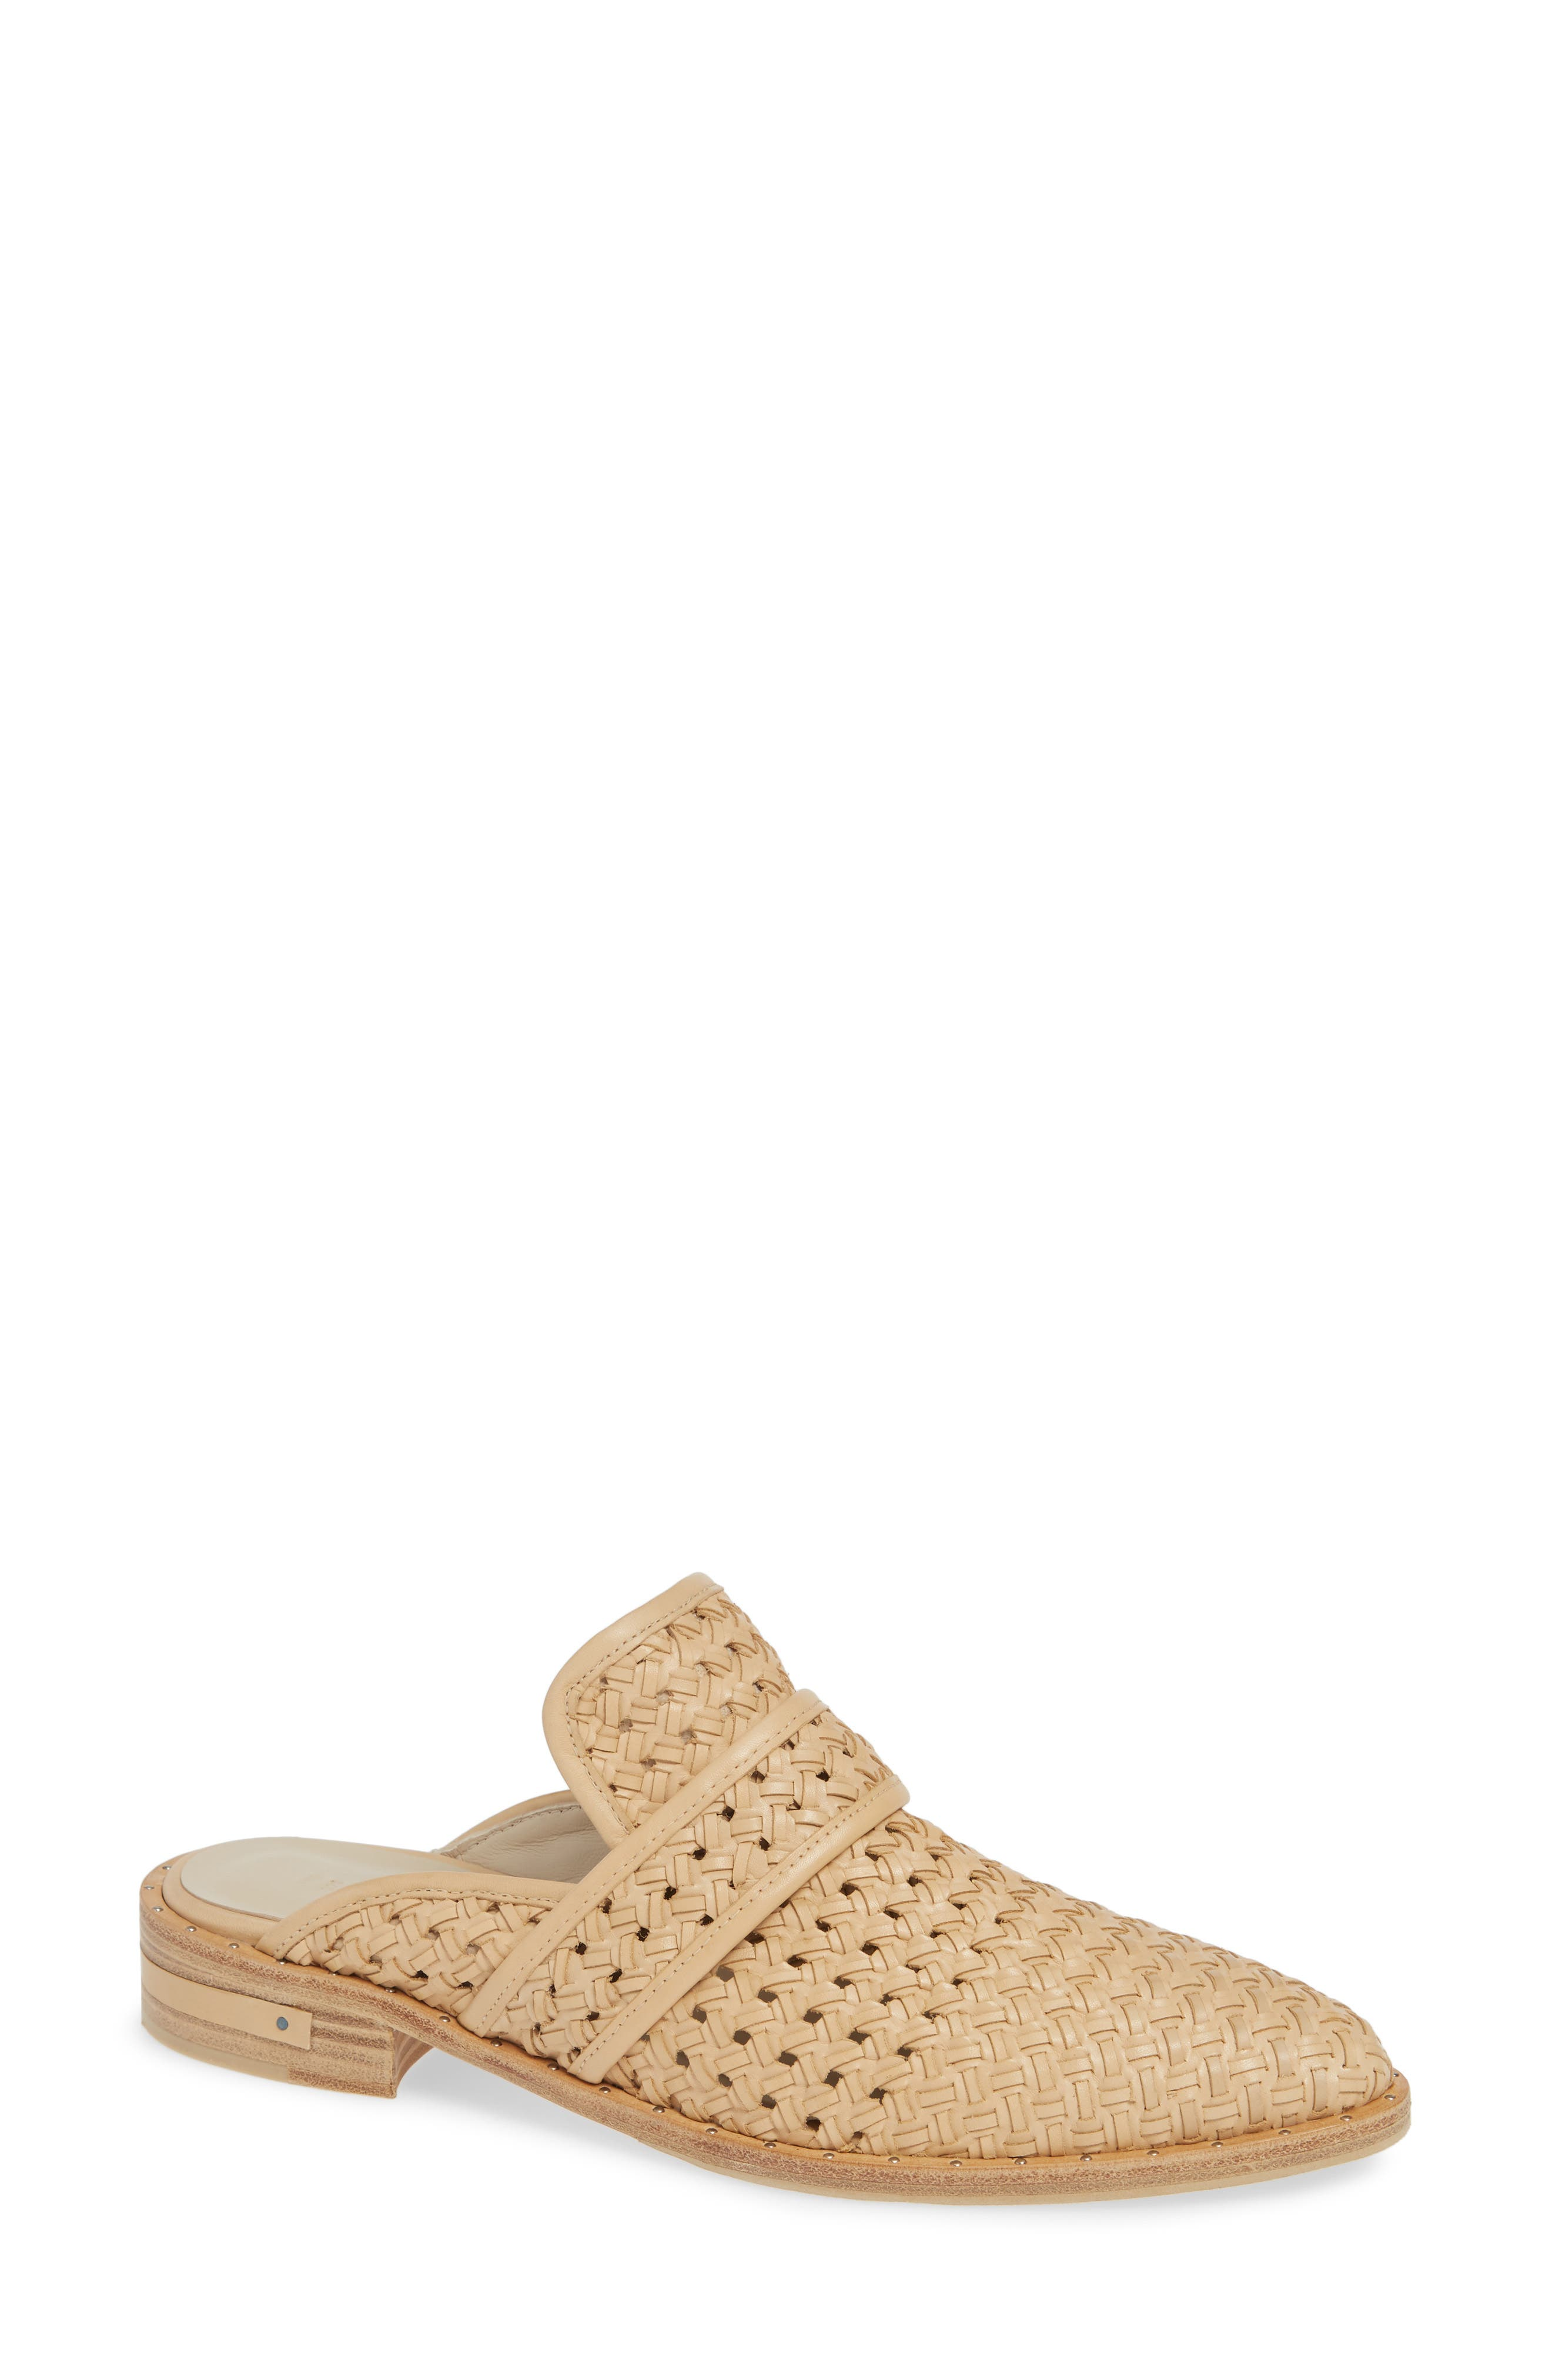 Keen Loafer Mule, Main, color, NUDE WOVEN